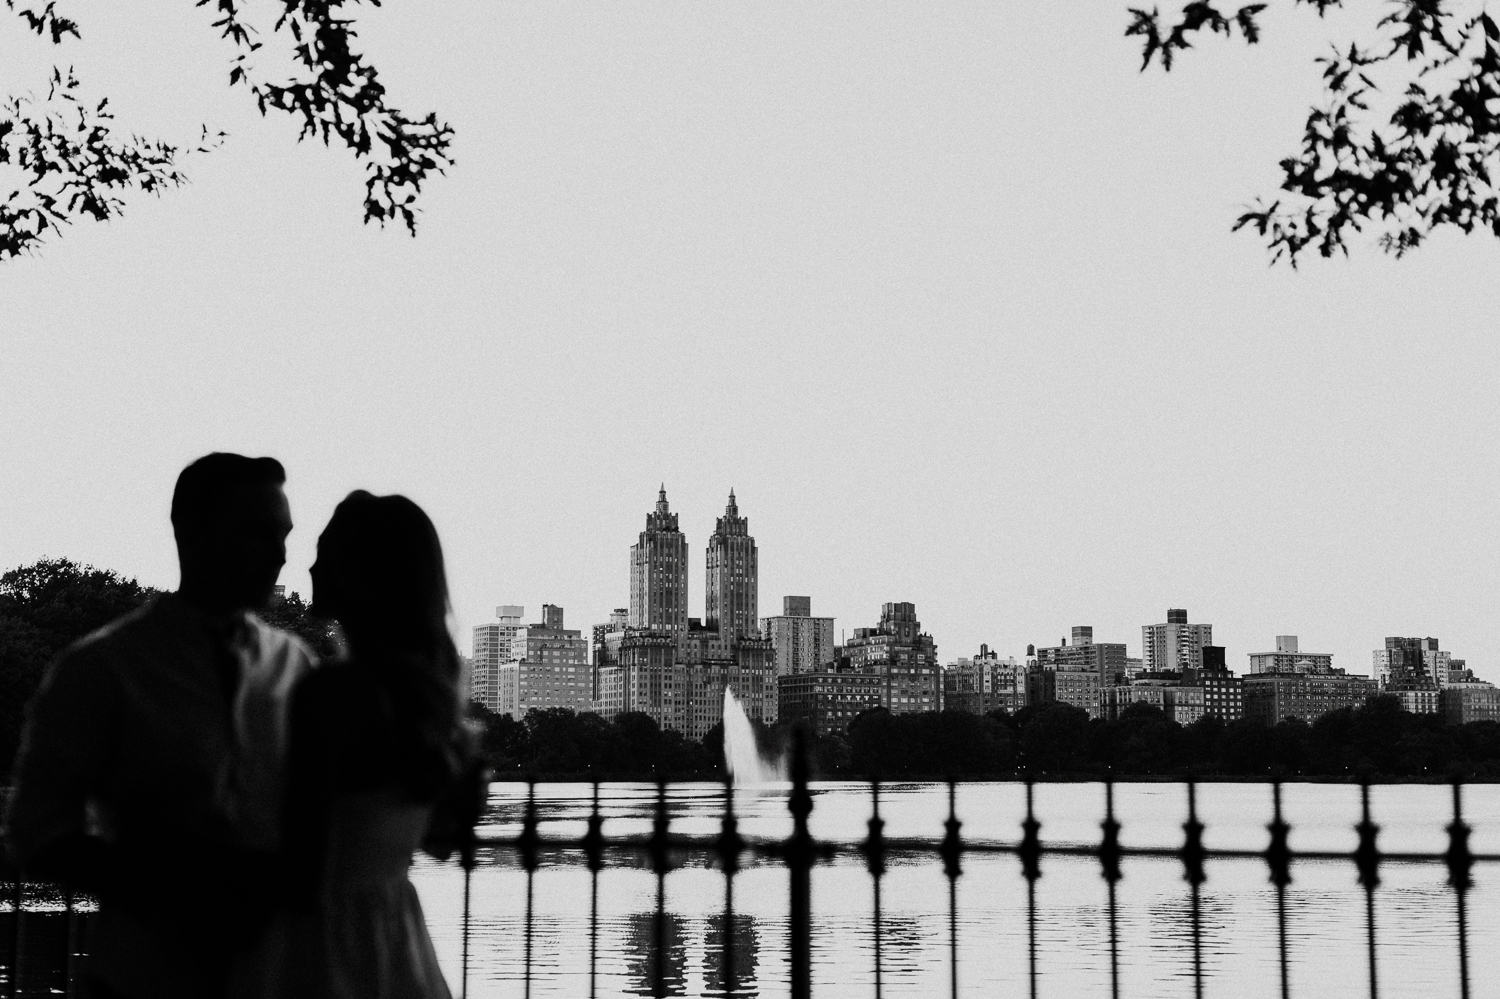 upper-east-side-new-york-central-park-wedding-photographer 19.jpg